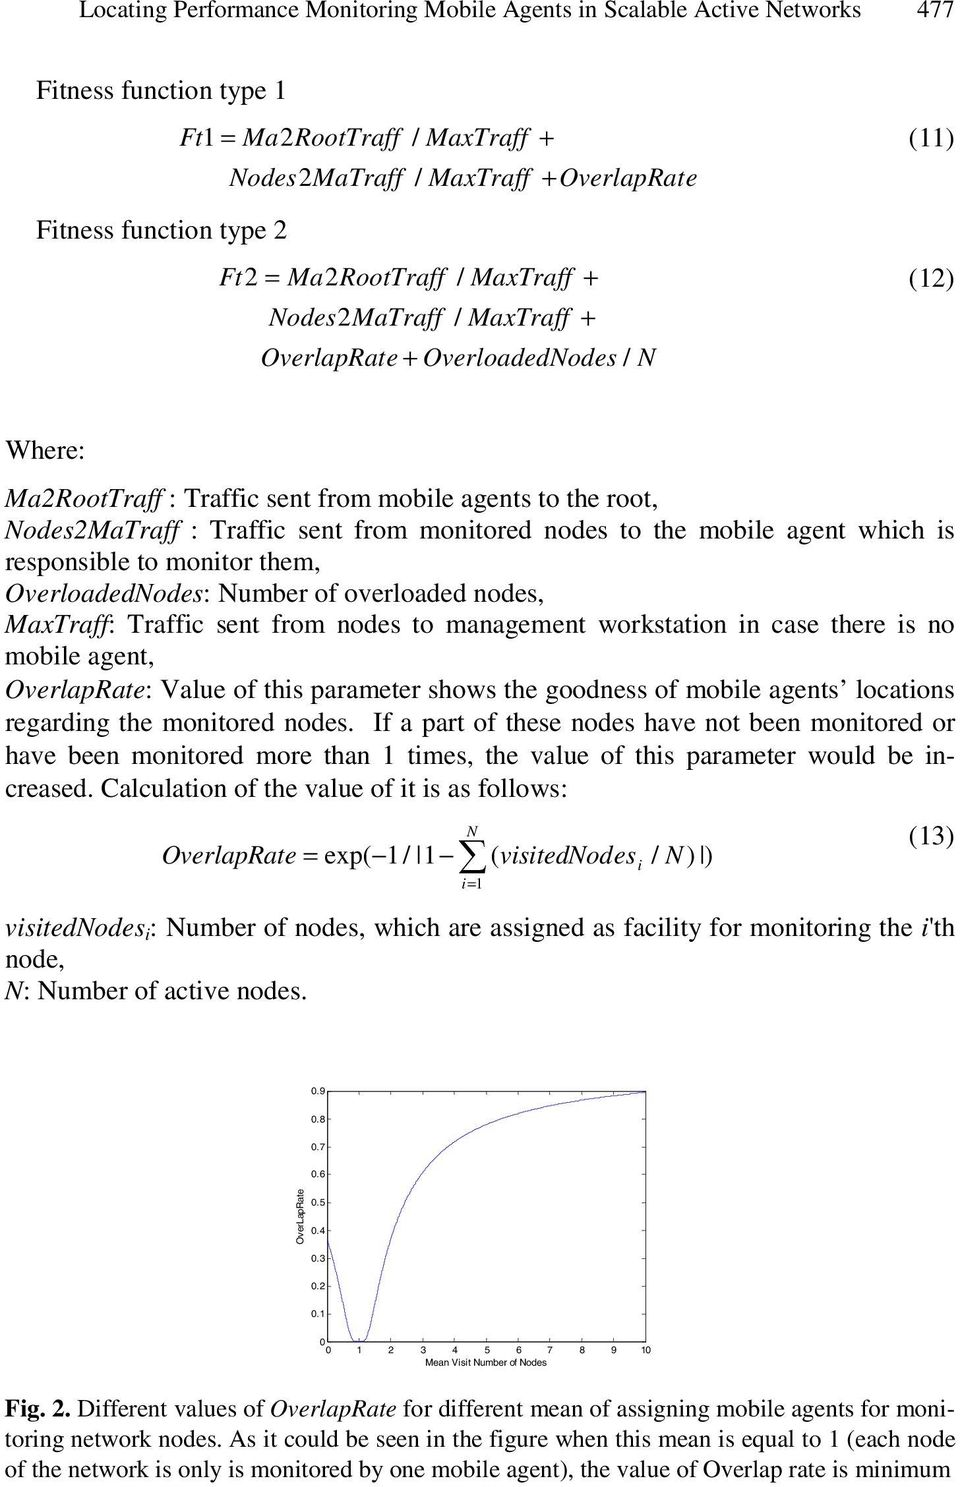 odes to the mobile aget which is resposible to moitor them, OverloadedNodes: Number of overloaded odes, MaxTraff: Traffic set from odes to maagemet workstatio i case there is o mobile aget,